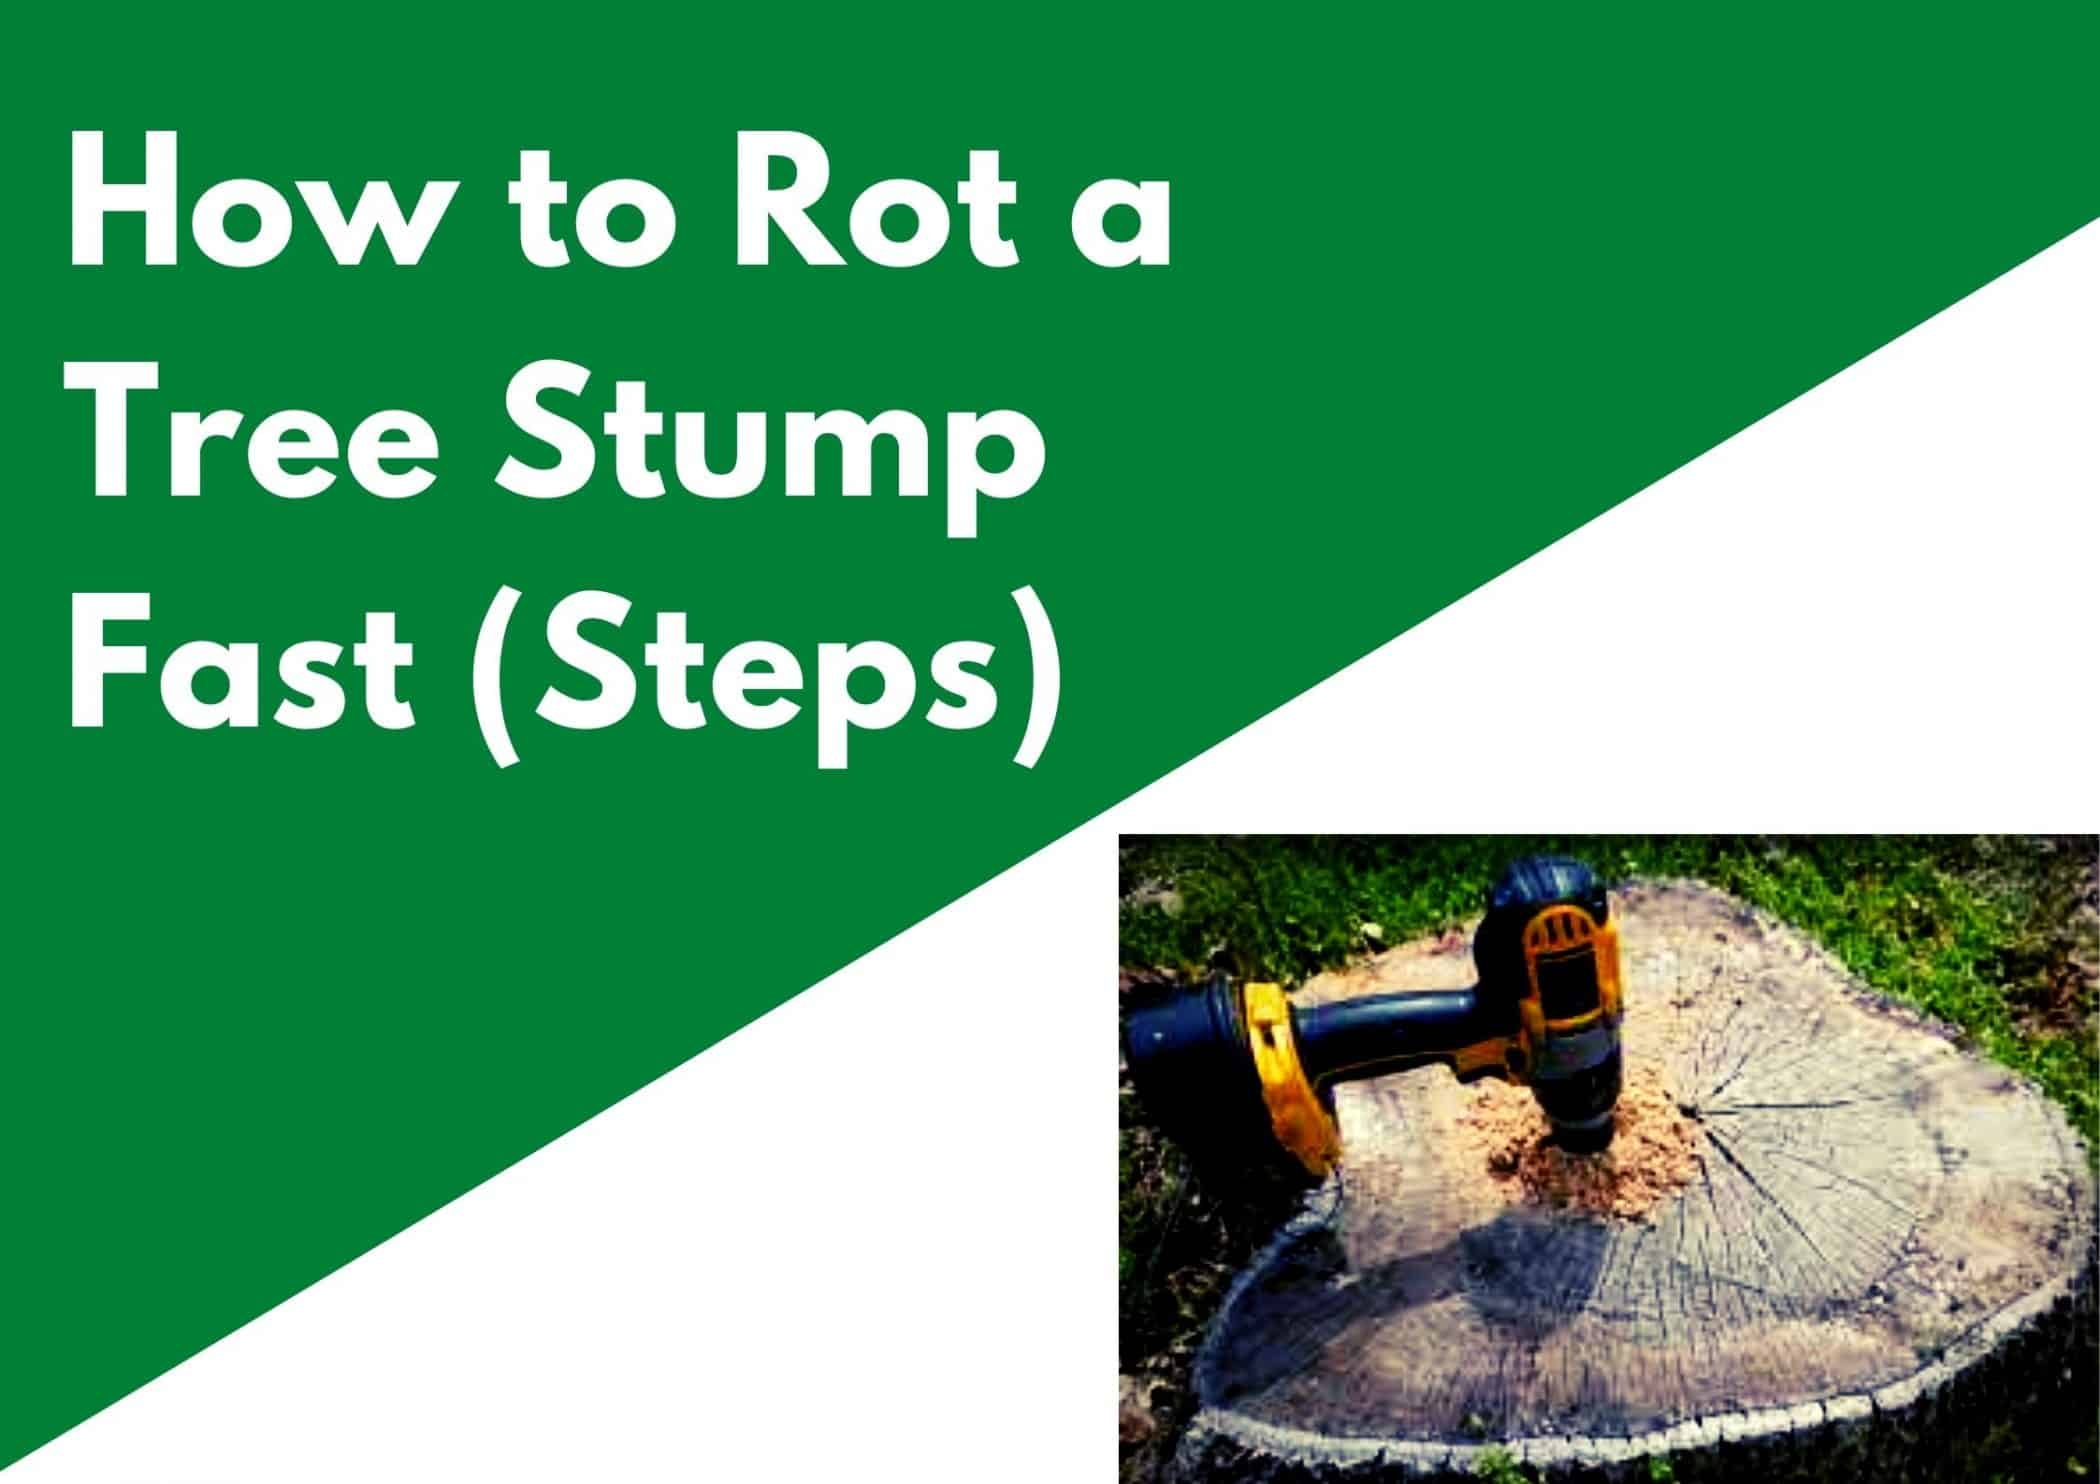 How to Rot a Tree Stump Fast